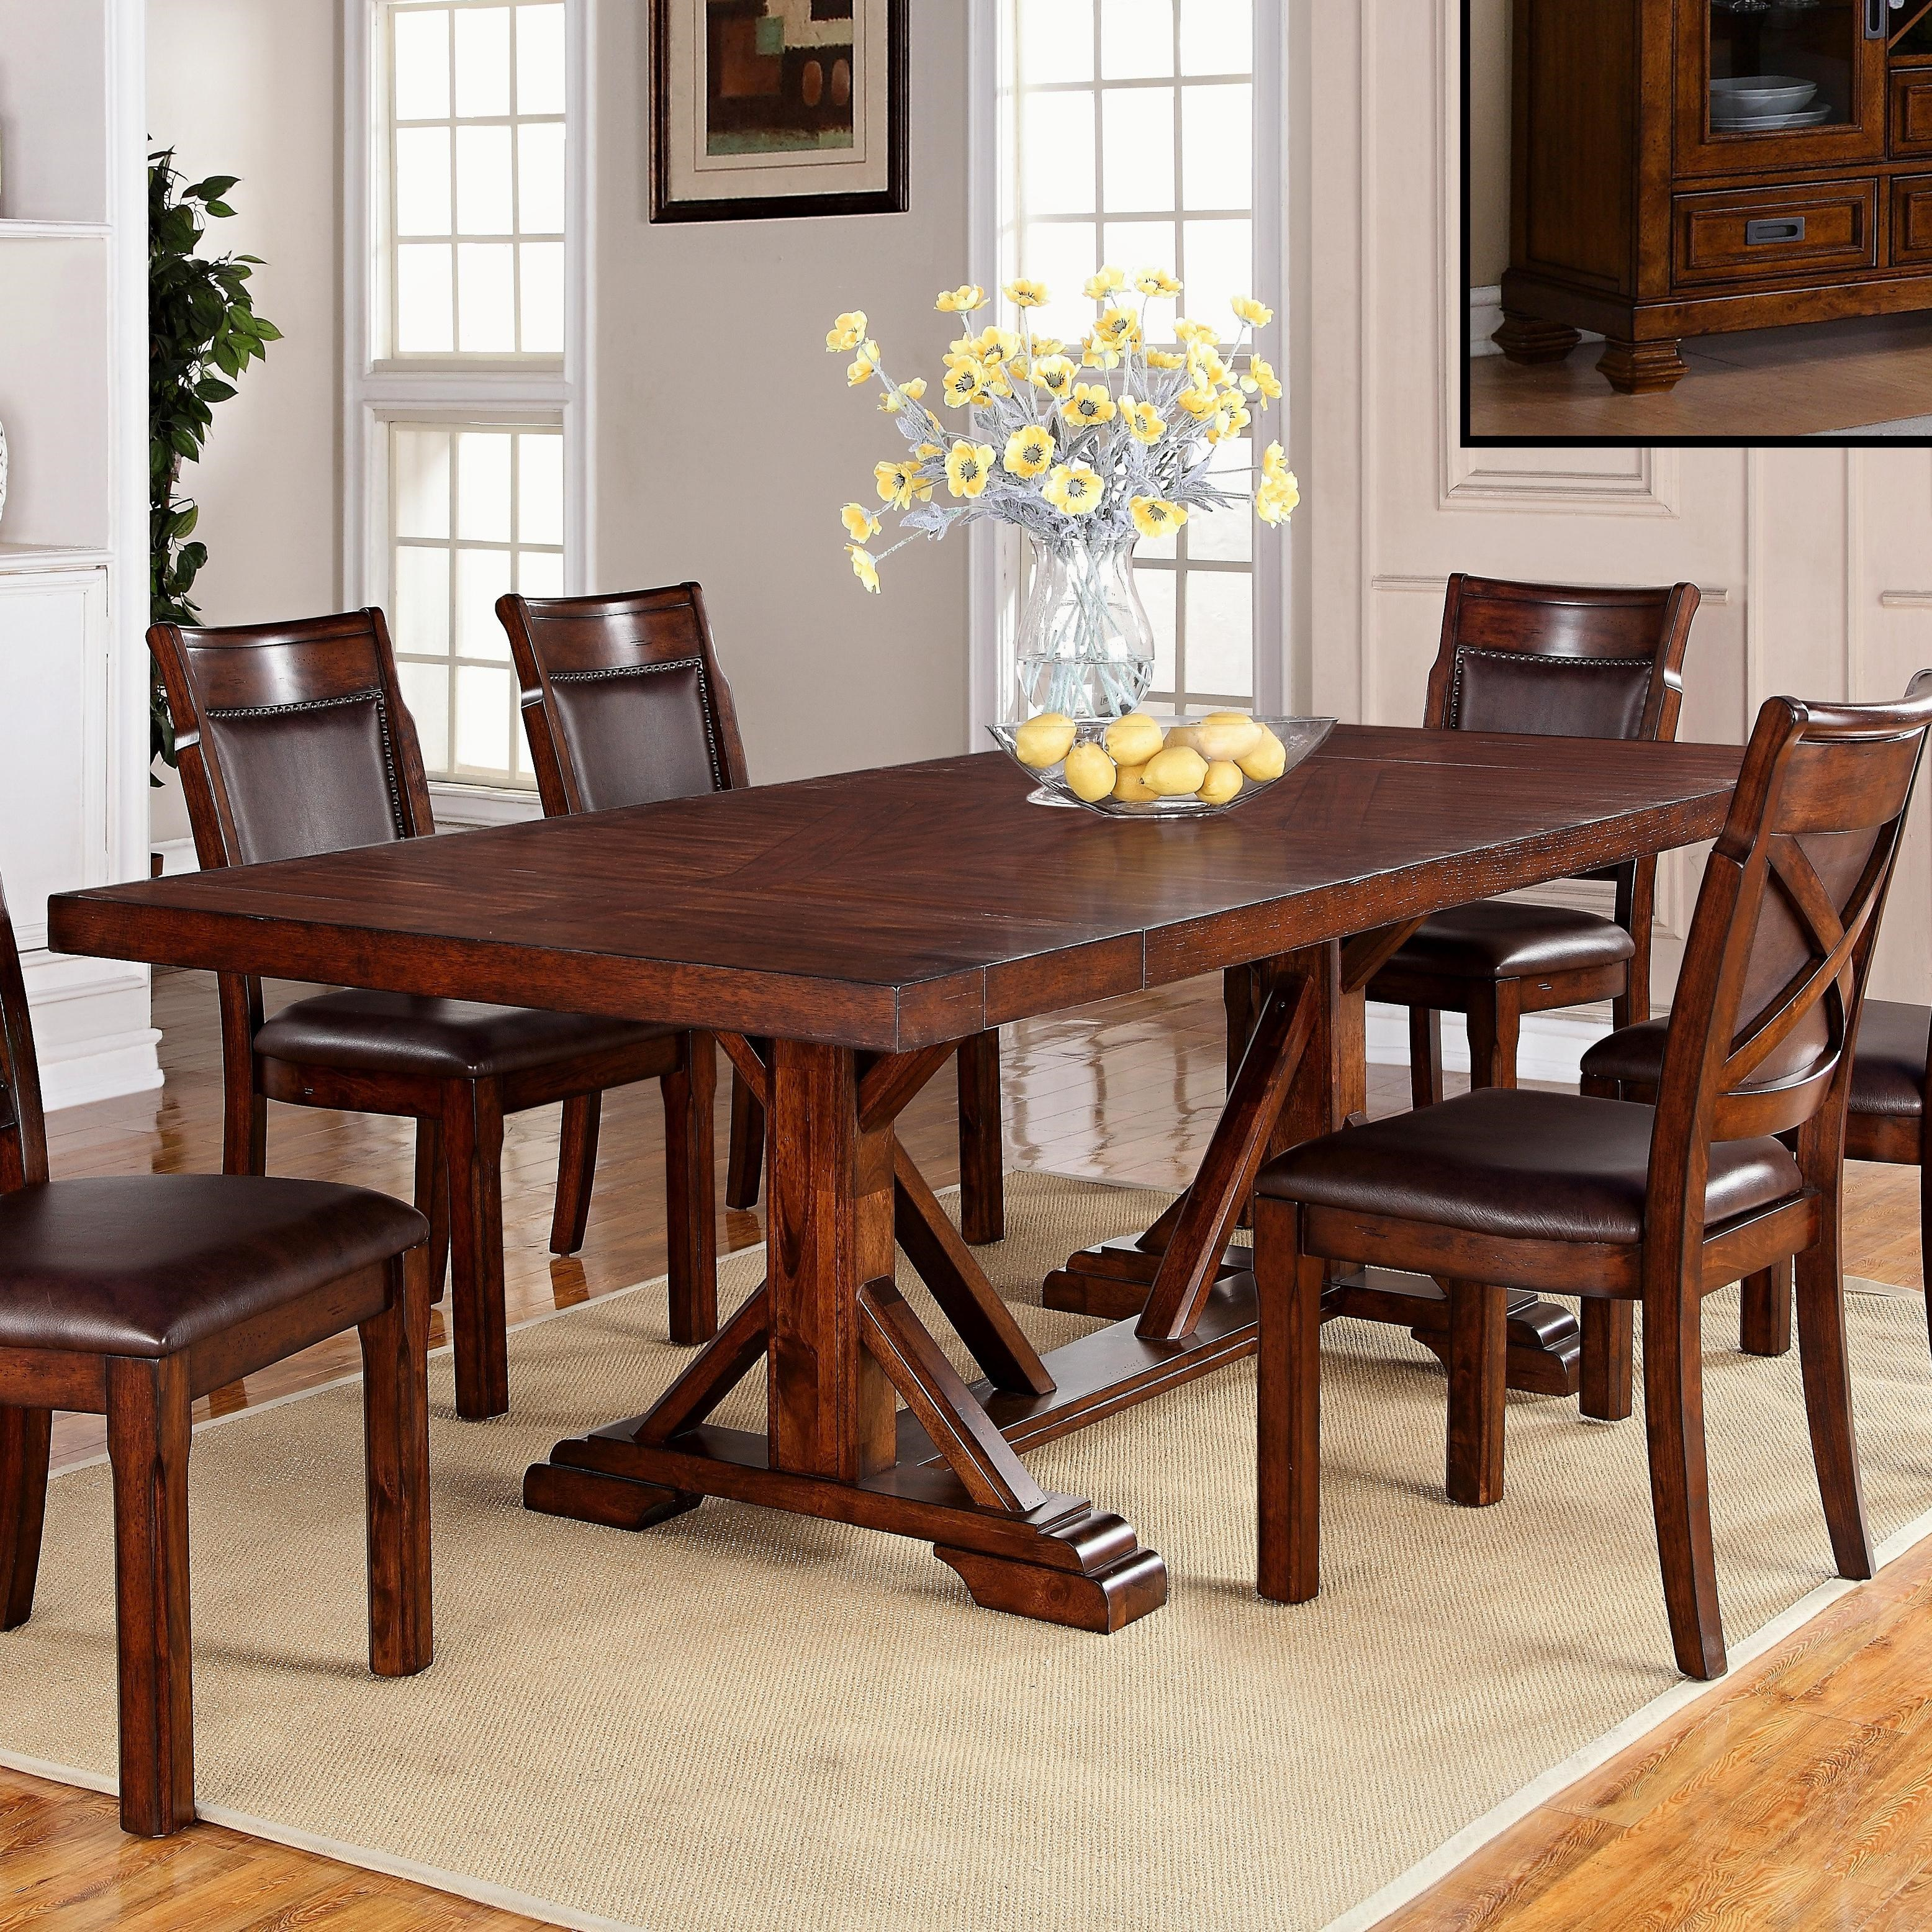 Warehouse Table Adirondack Trestle Dining Table With Two Leaves By Warehouse M At Pilgrim Furniture City